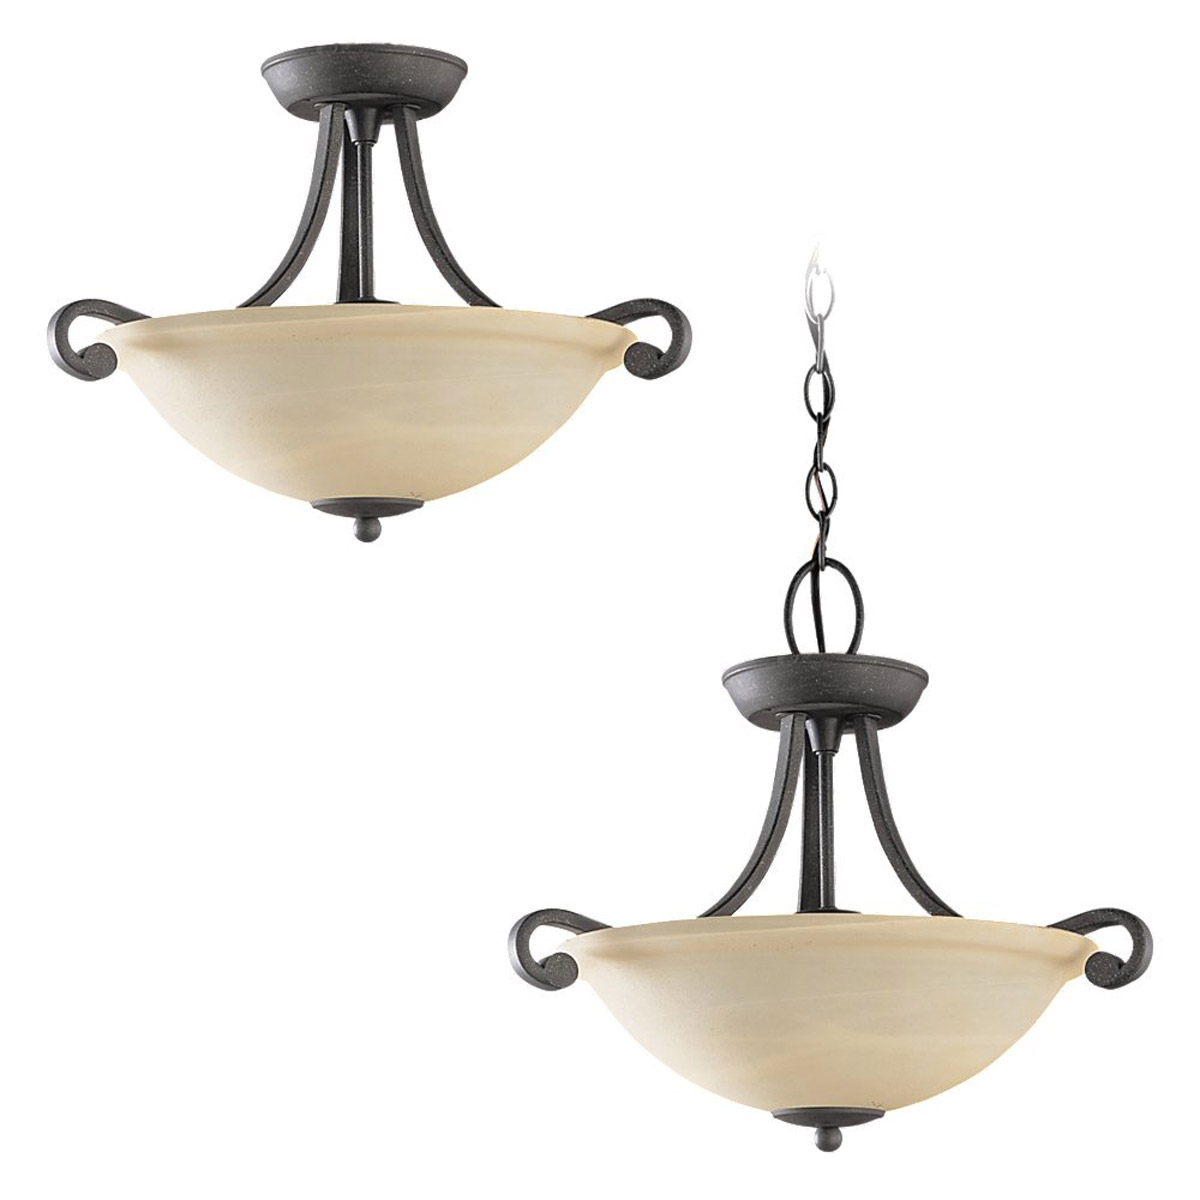 Sea Gull Lighting Serenity 3 Light Semi-Flush Mount in Weathered Iron 59159BLE-07